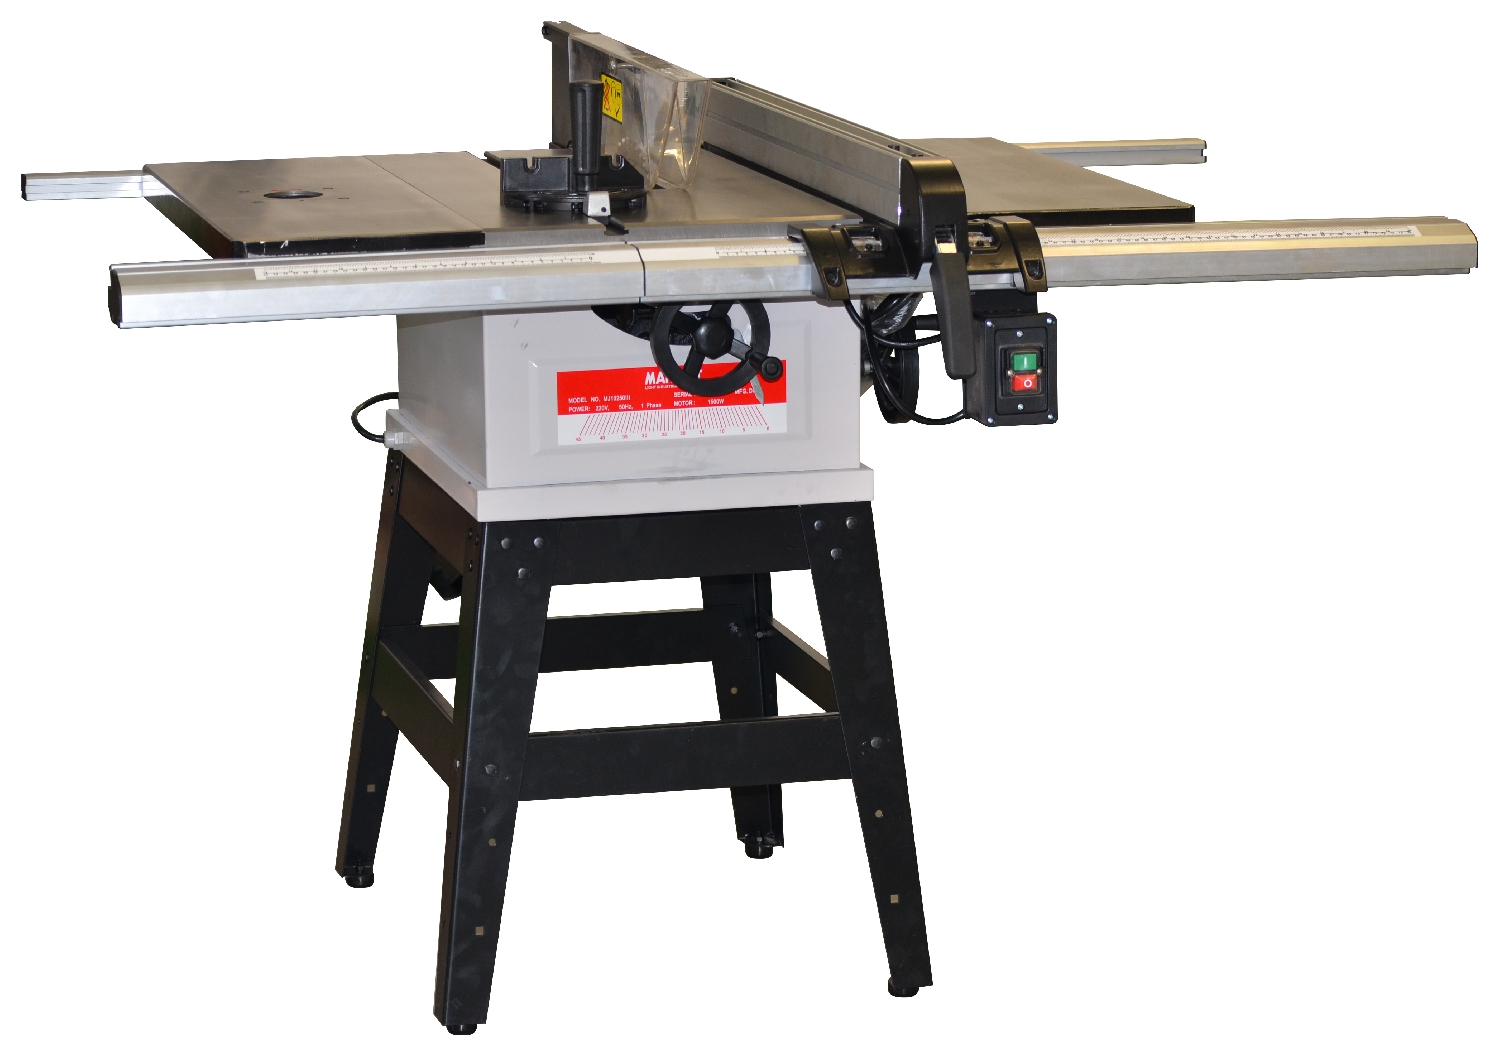 martlet-mj10250-table-saw